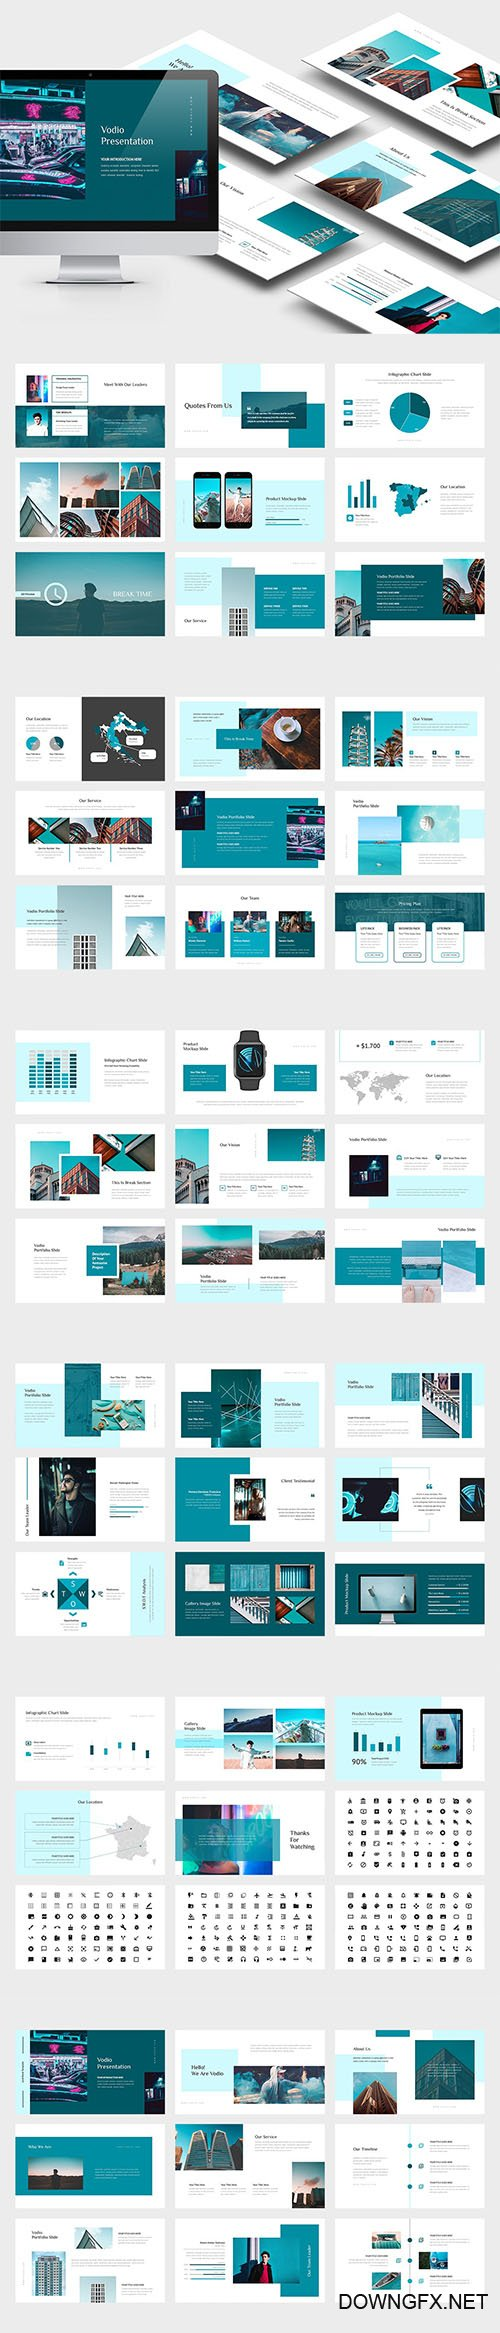 Vodio : Cyan Gradient Color Tone Powerpoint